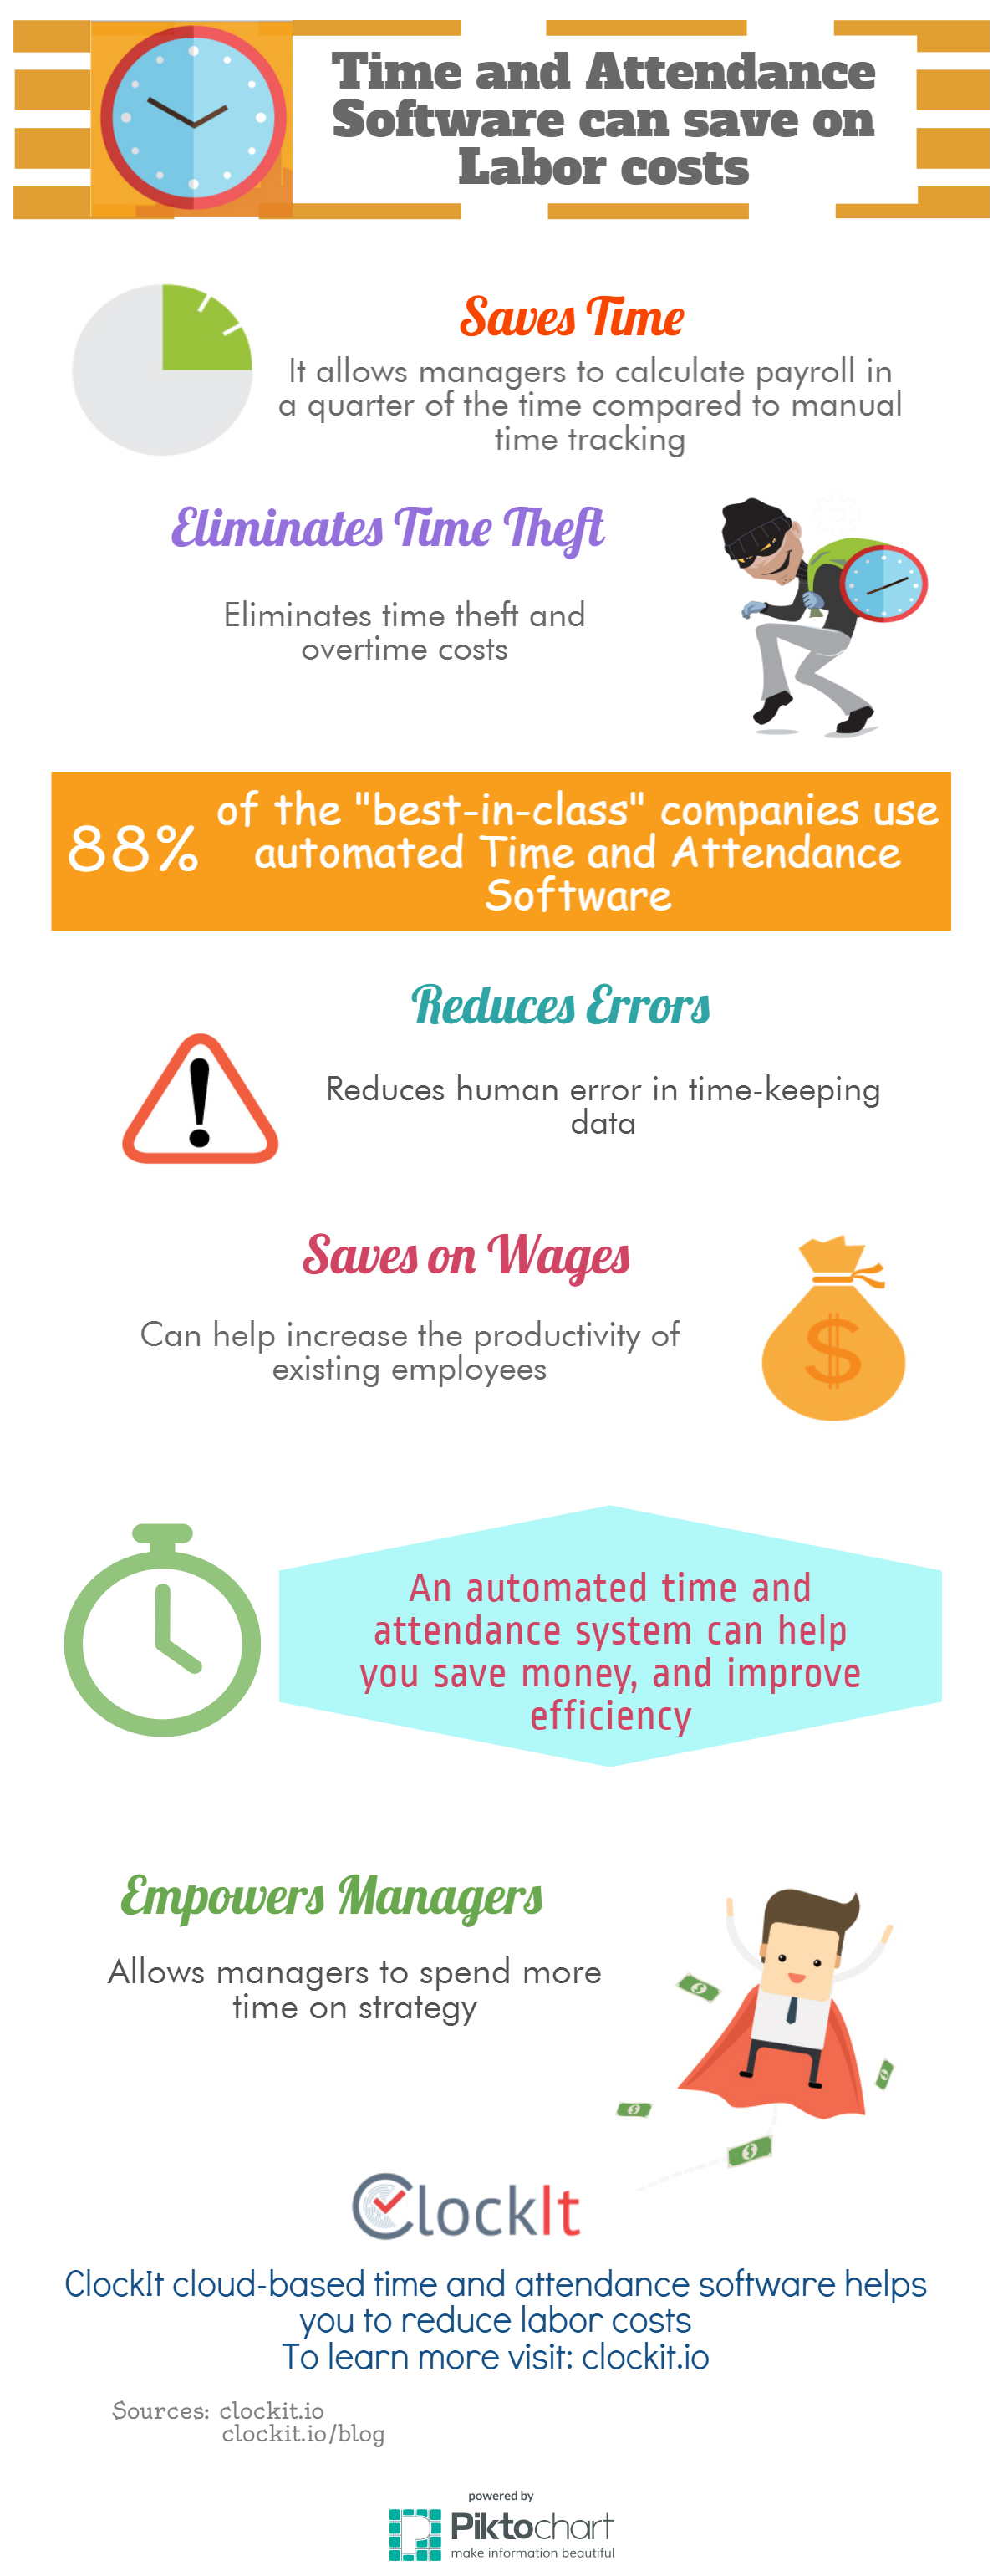 clockit time and attendance software